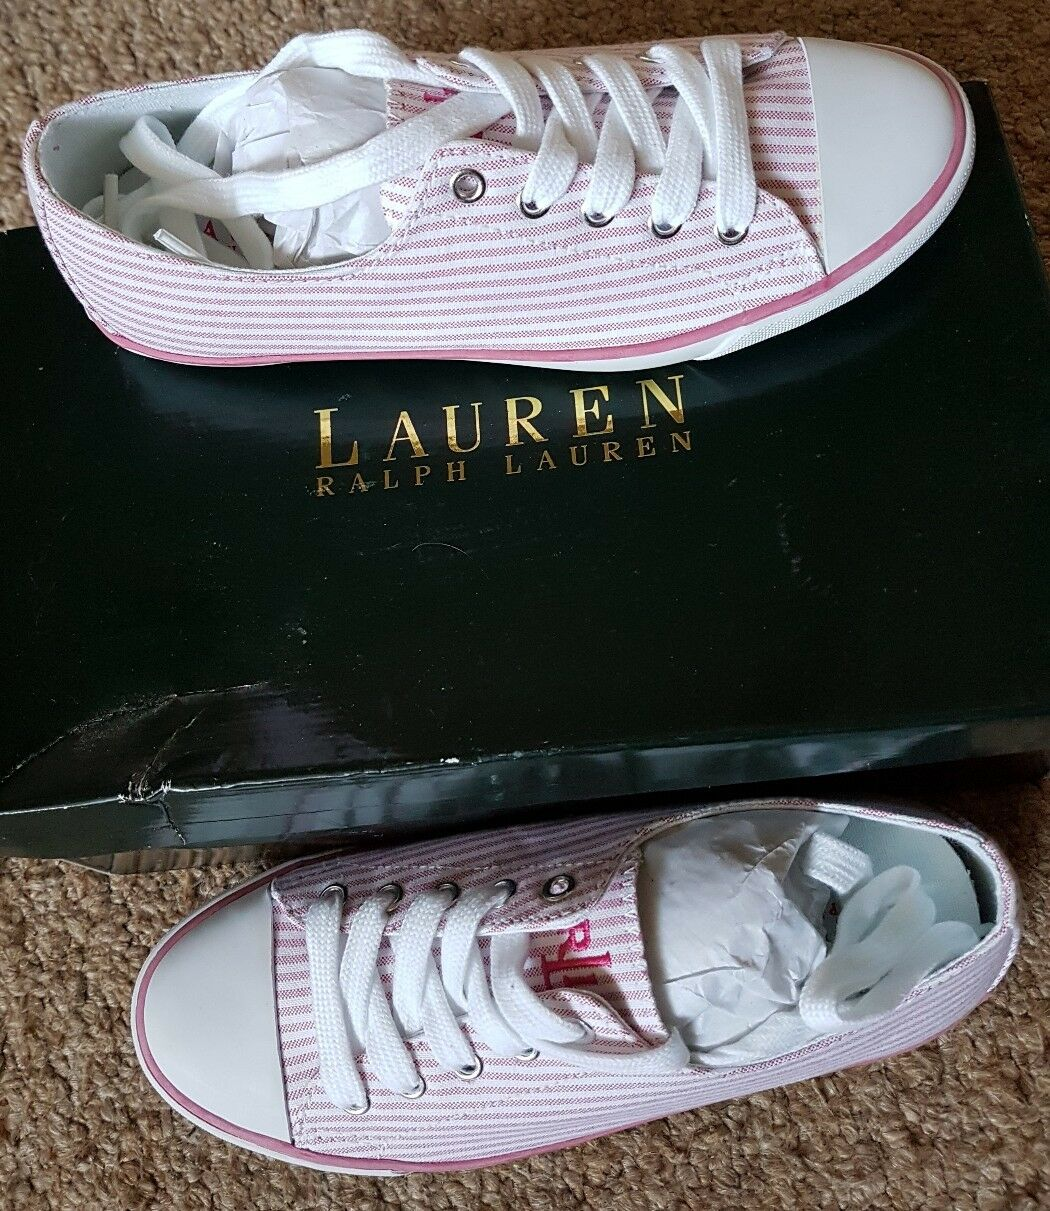 BNWB LAUREN OXFORD RALPH LAUREN POLLY-NE GERANIUM OXFORD LAUREN CLOTH-ST  TRAINERS SIZE UK 2.5 178b7e